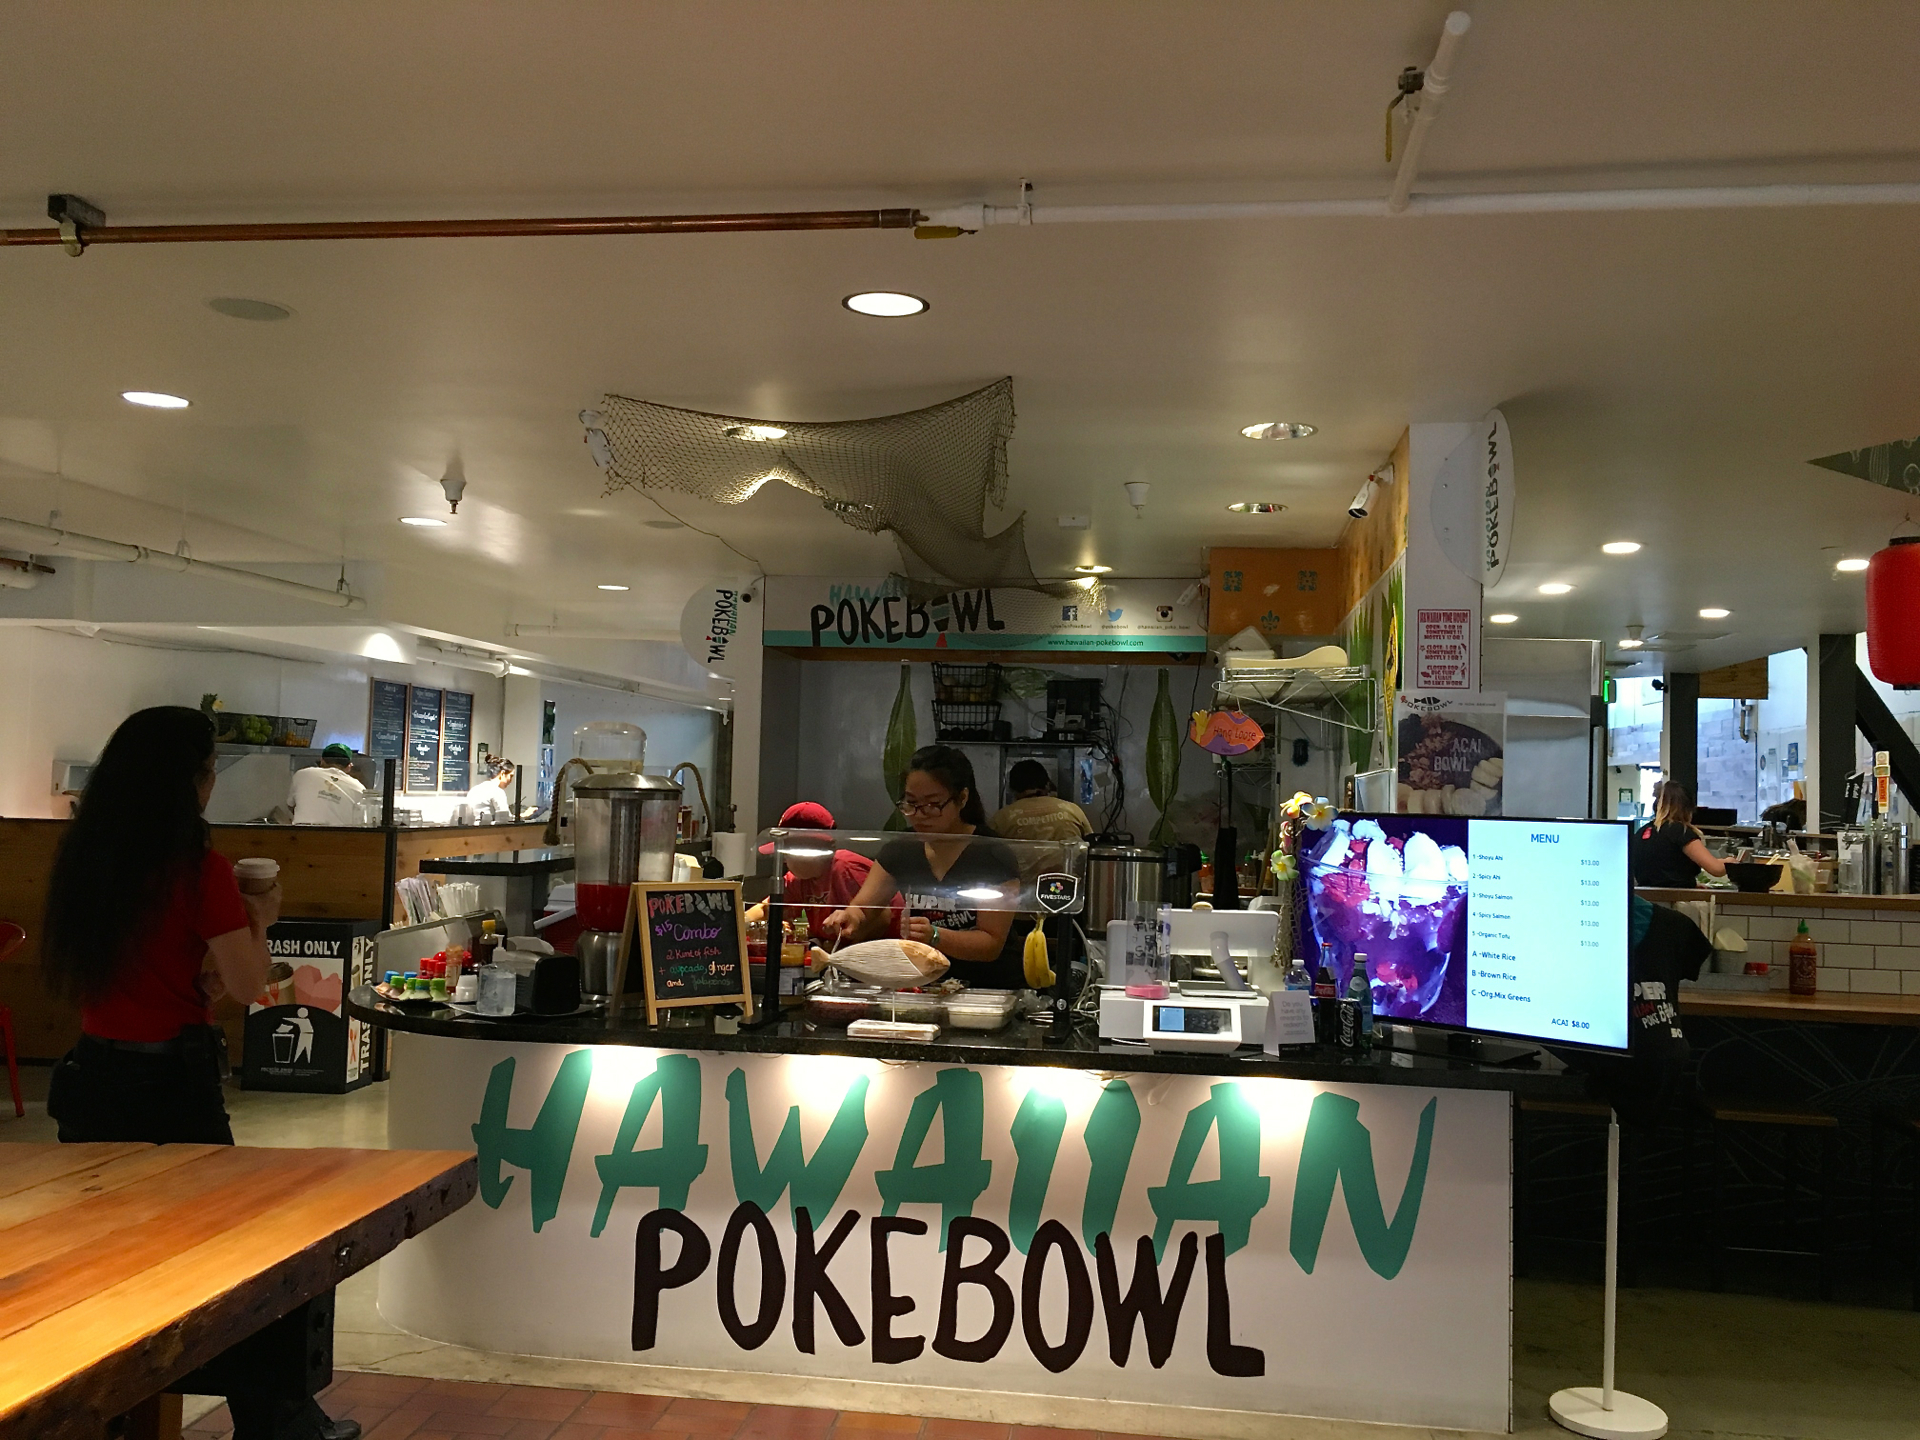 Hawaiian Poke Bowl inside the SoFA Market in San Jose.